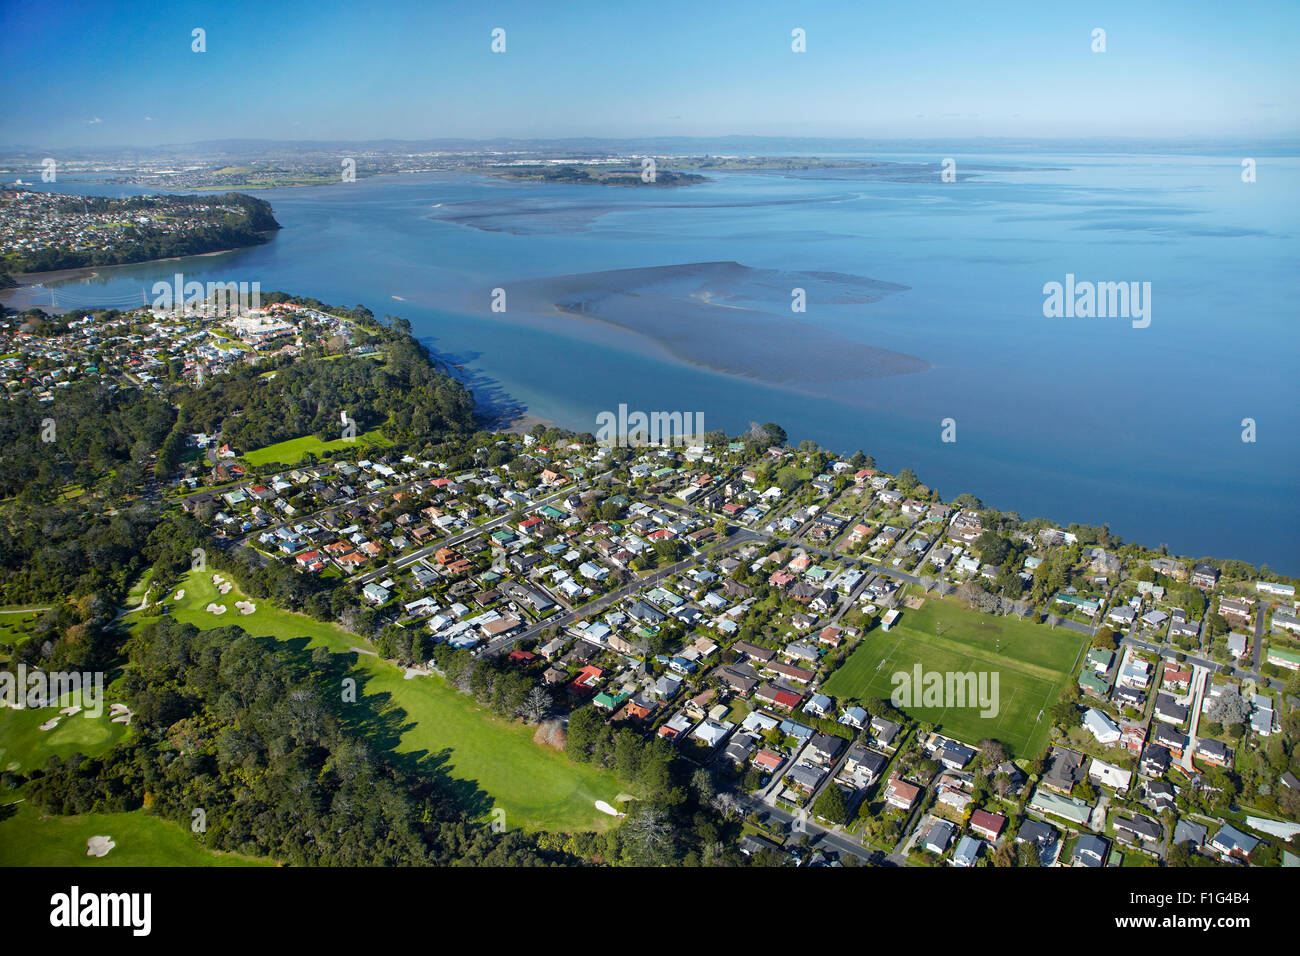 titirangi golf course green bay and manukau harbour auckland stock photo royalty free image. Black Bedroom Furniture Sets. Home Design Ideas